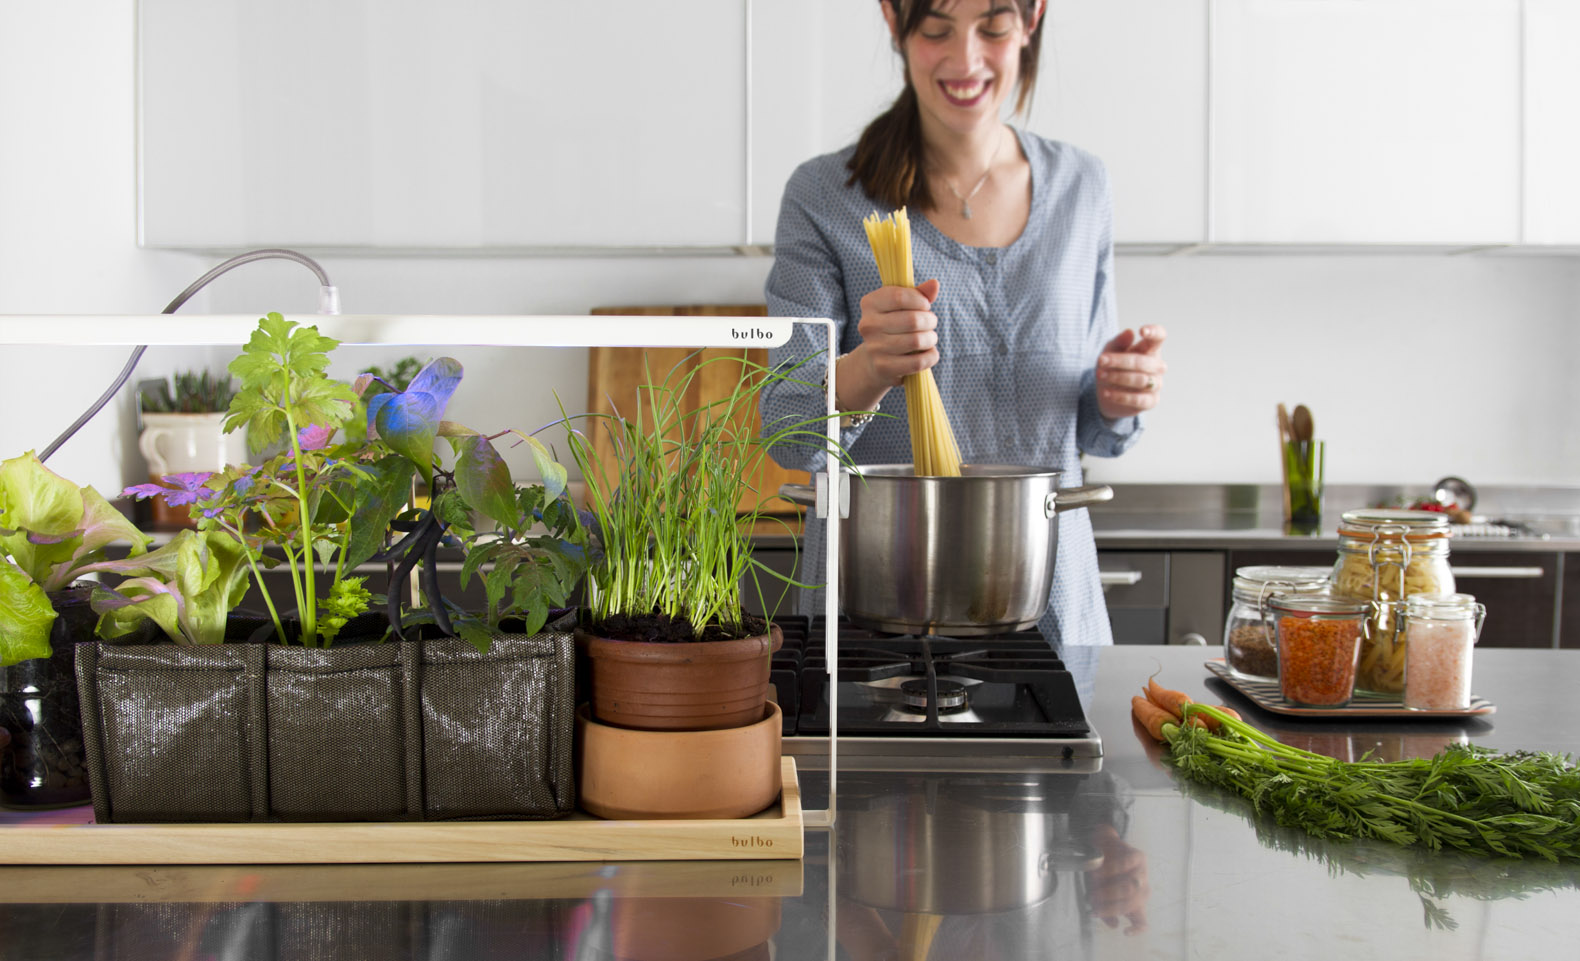 Grow your own fruit and veg indoors in even the smallest spaces with Bulbo